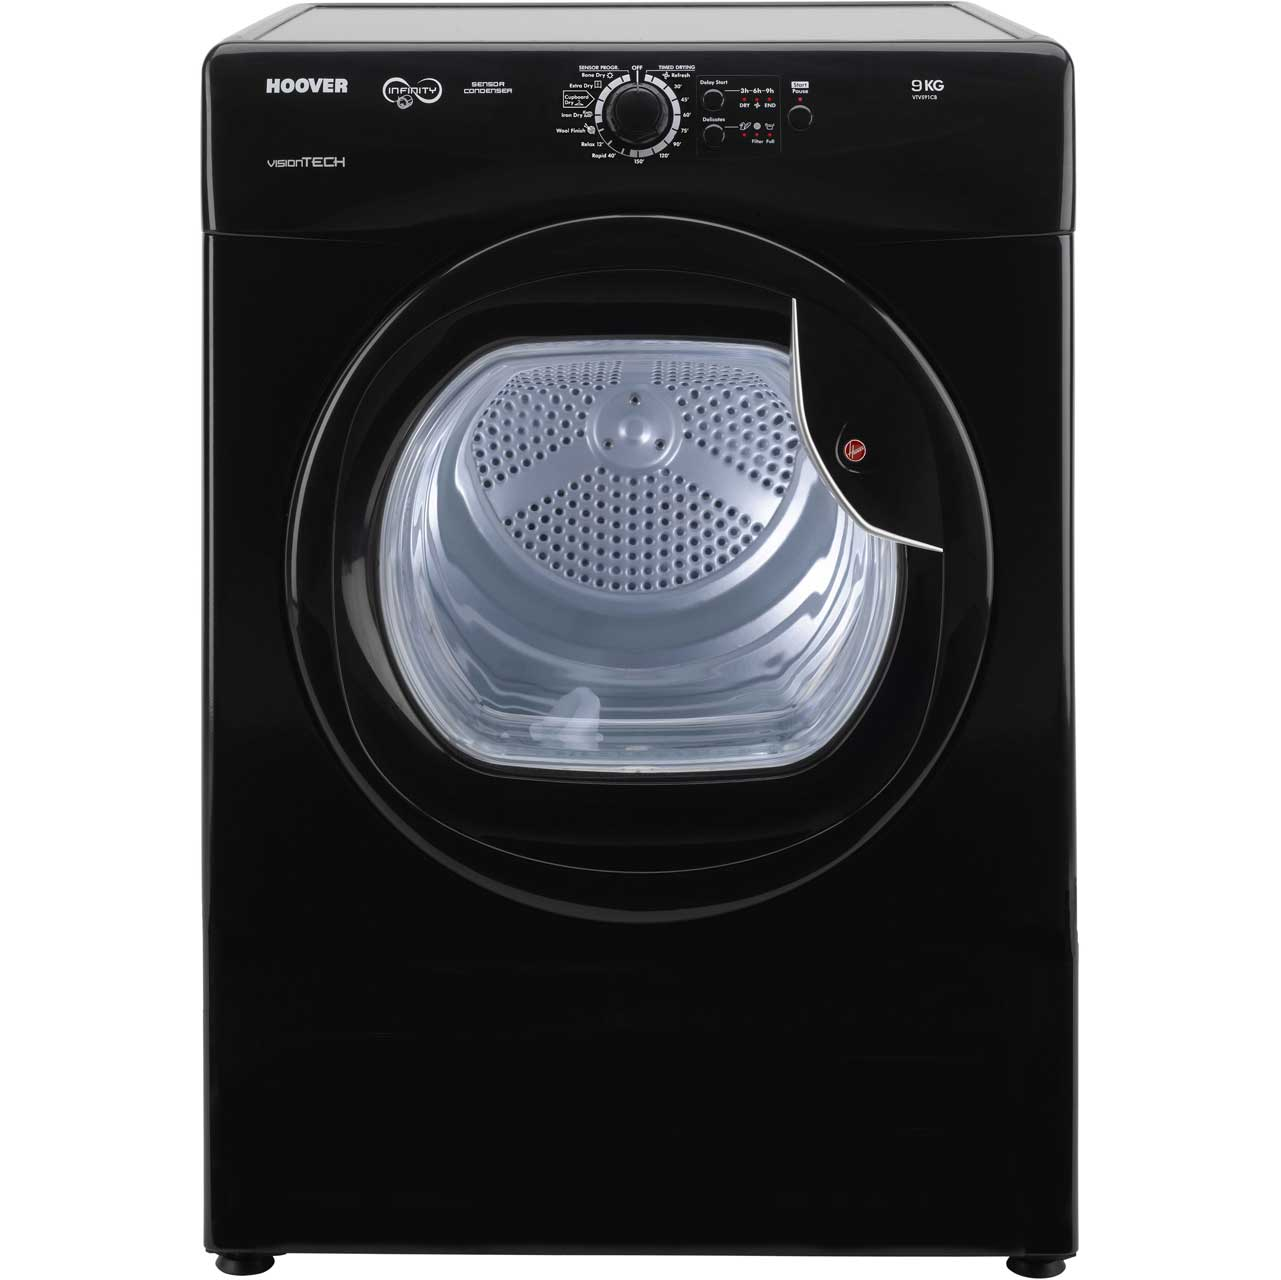 Hoover Vision Tech VTV591CB Free Standing Vented Tumble Dryer in Black